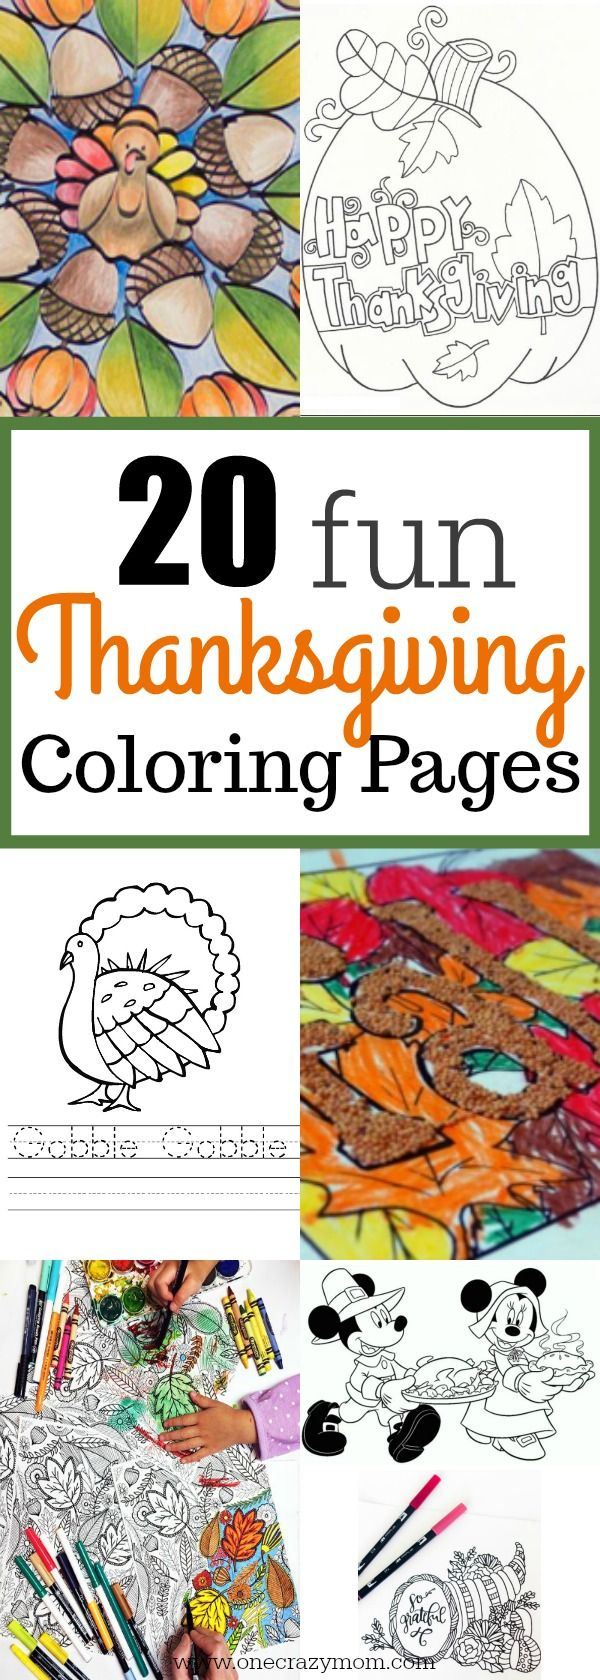 Free Thanksgiving Coloring Pages - 20 Thanksgiving Coloring Pages ...